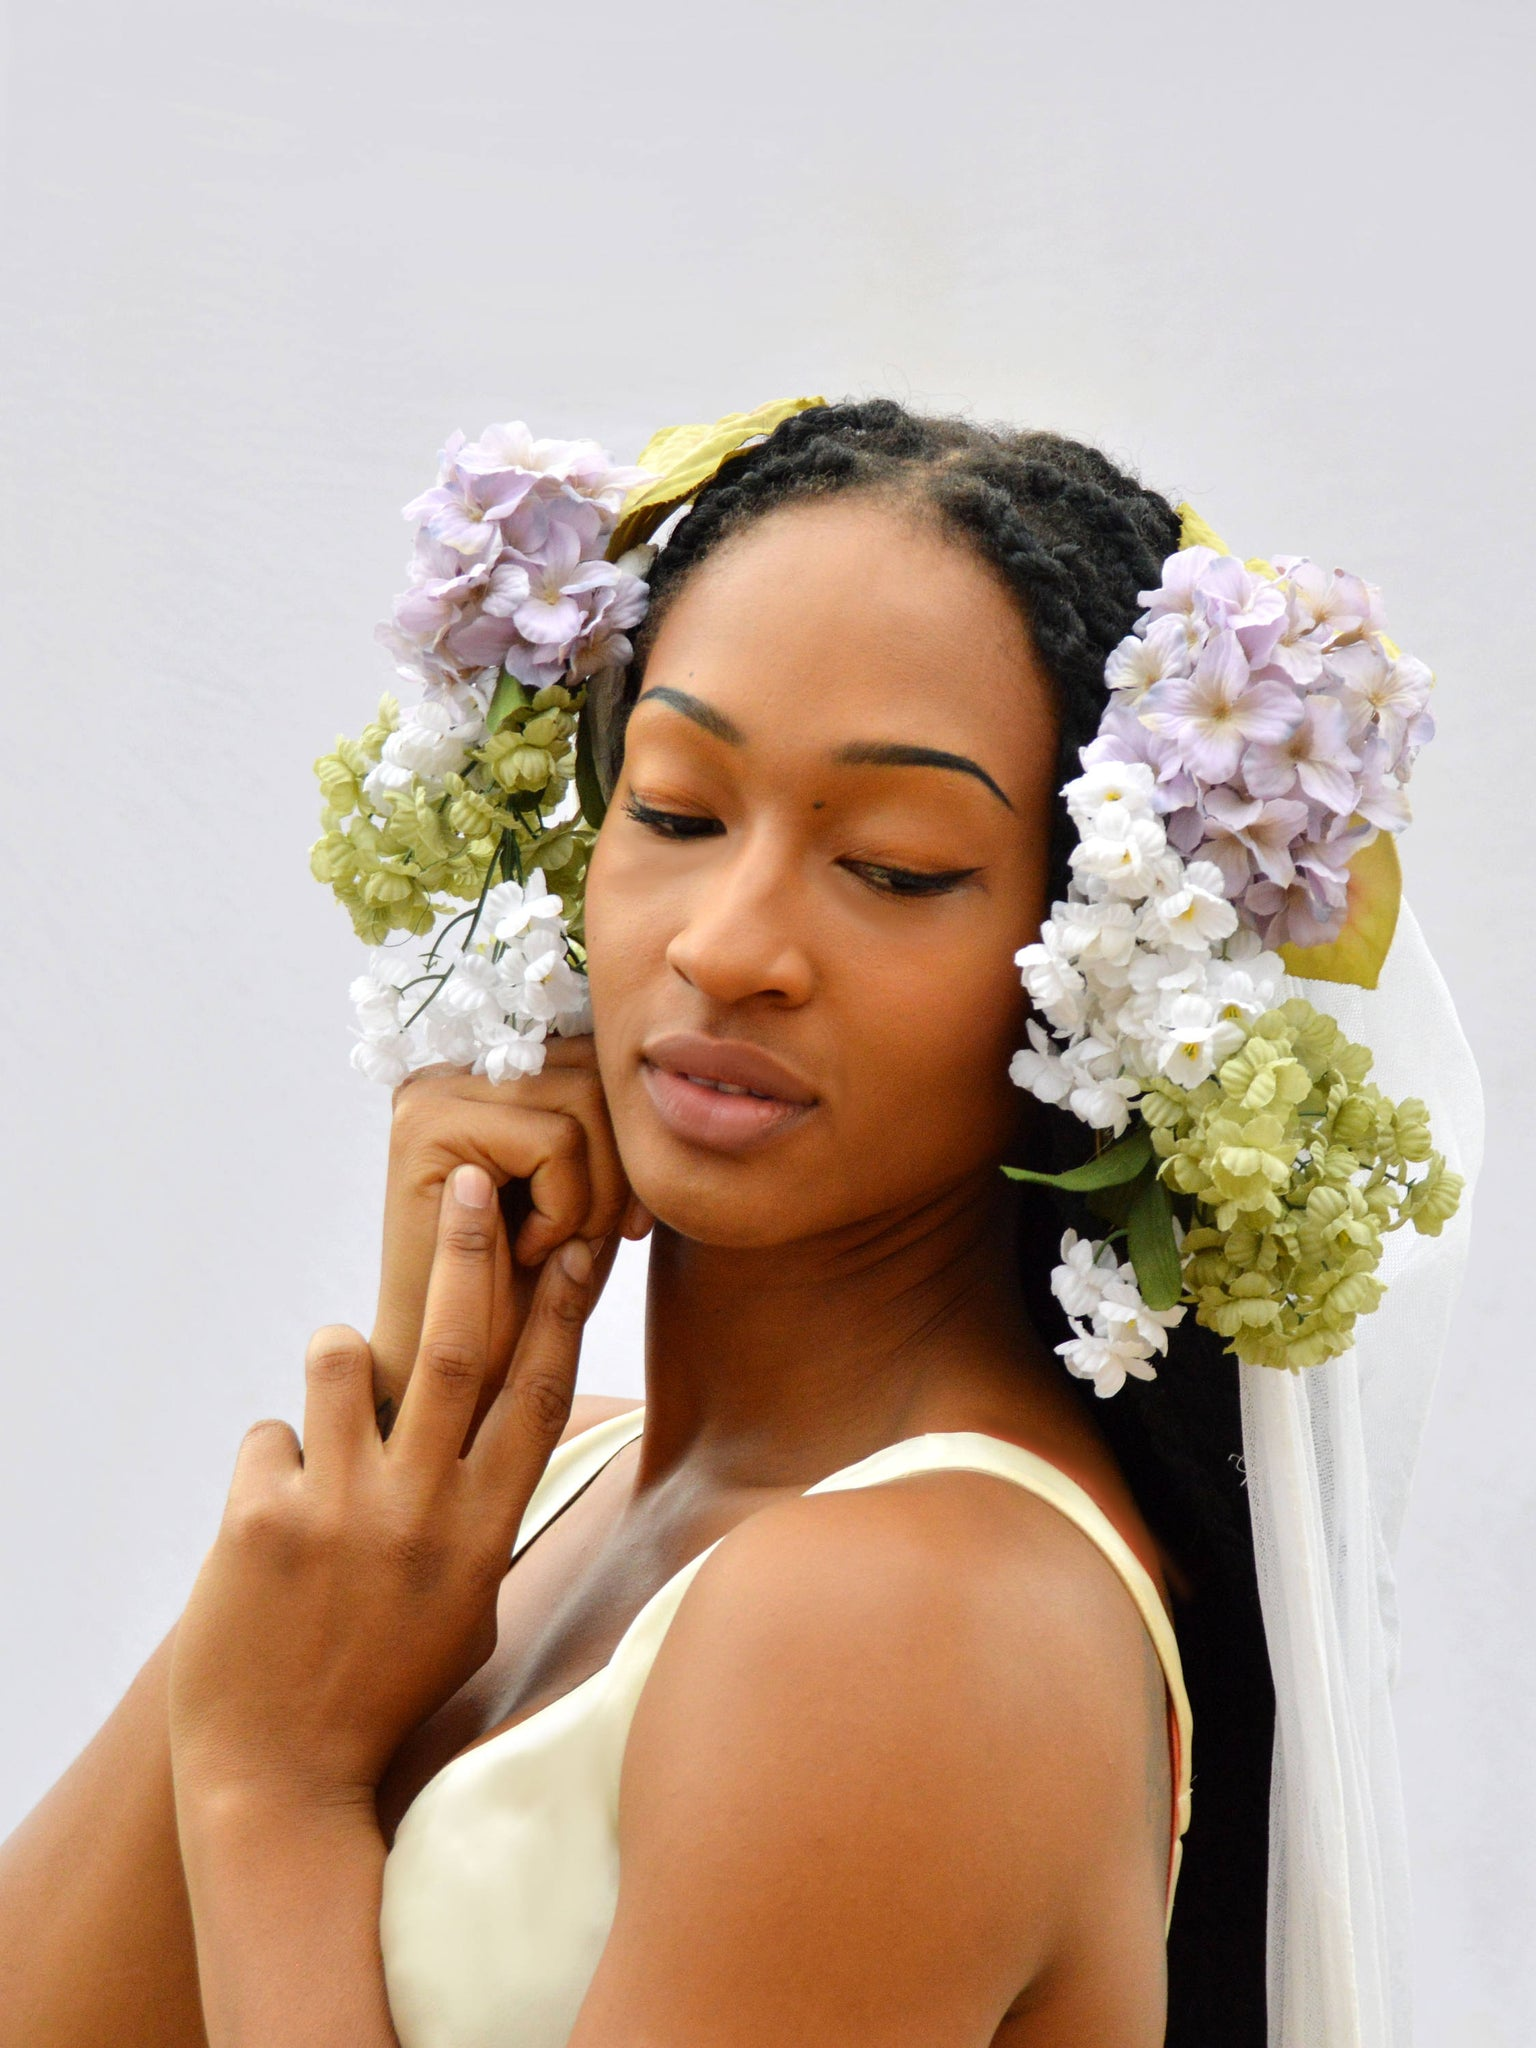 close up of model in white wedding dress, with purple, green, and white flowers in her hair.